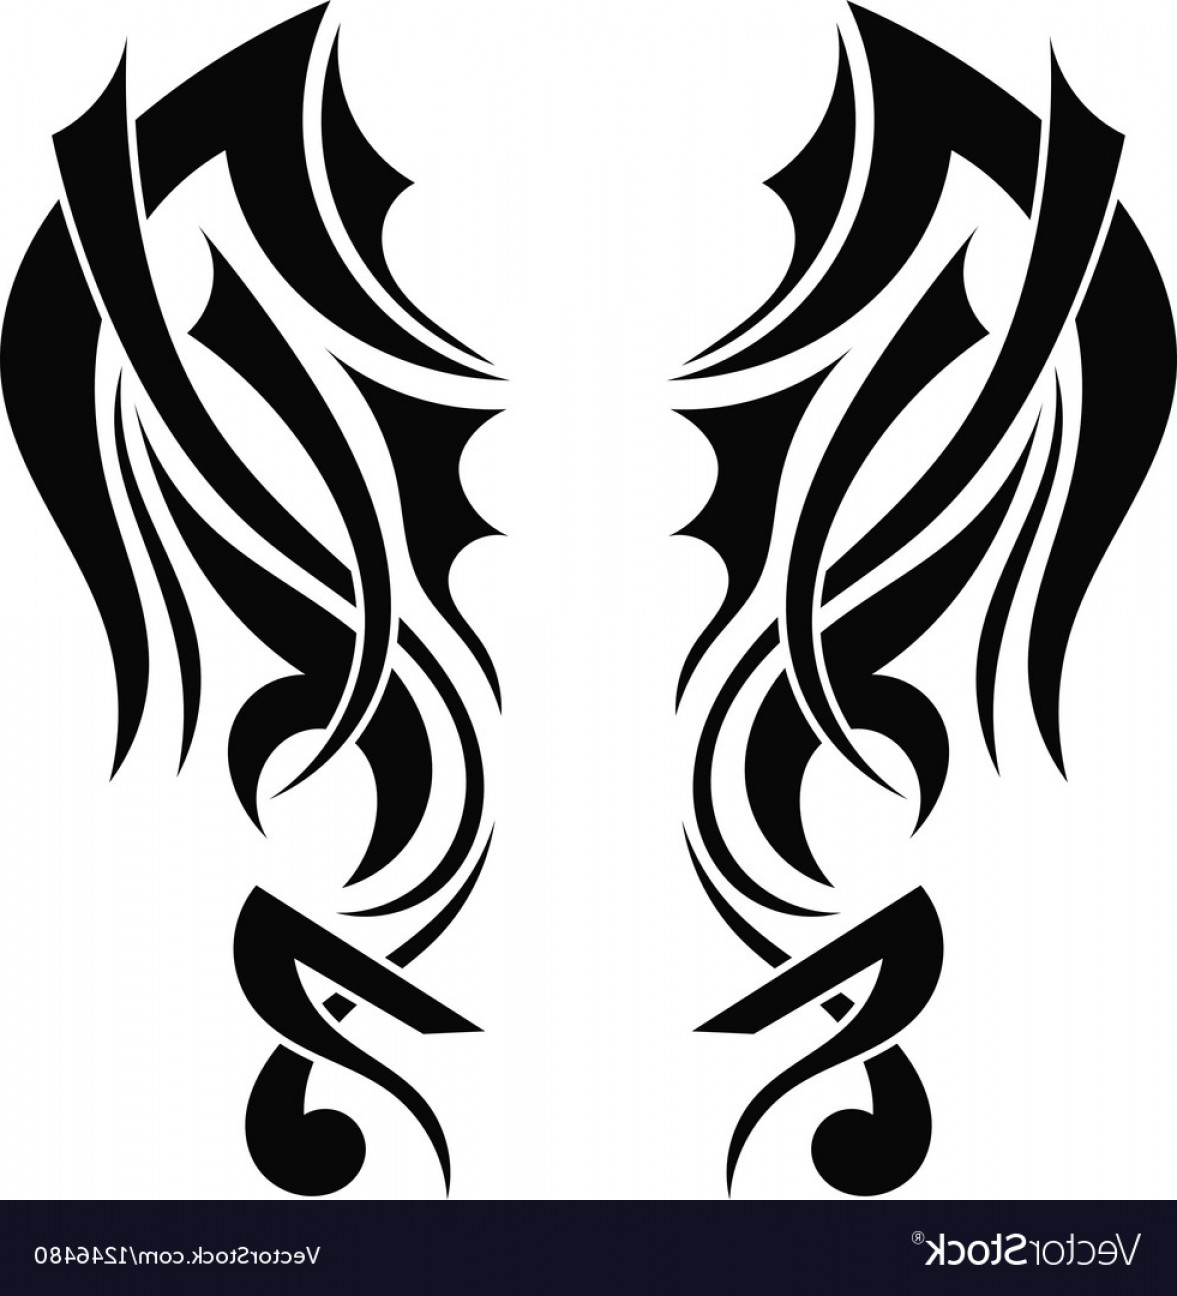 Angel Wings Tattoo Tribal Vector: Graphic Design Tribal Tattoo Wings Vector